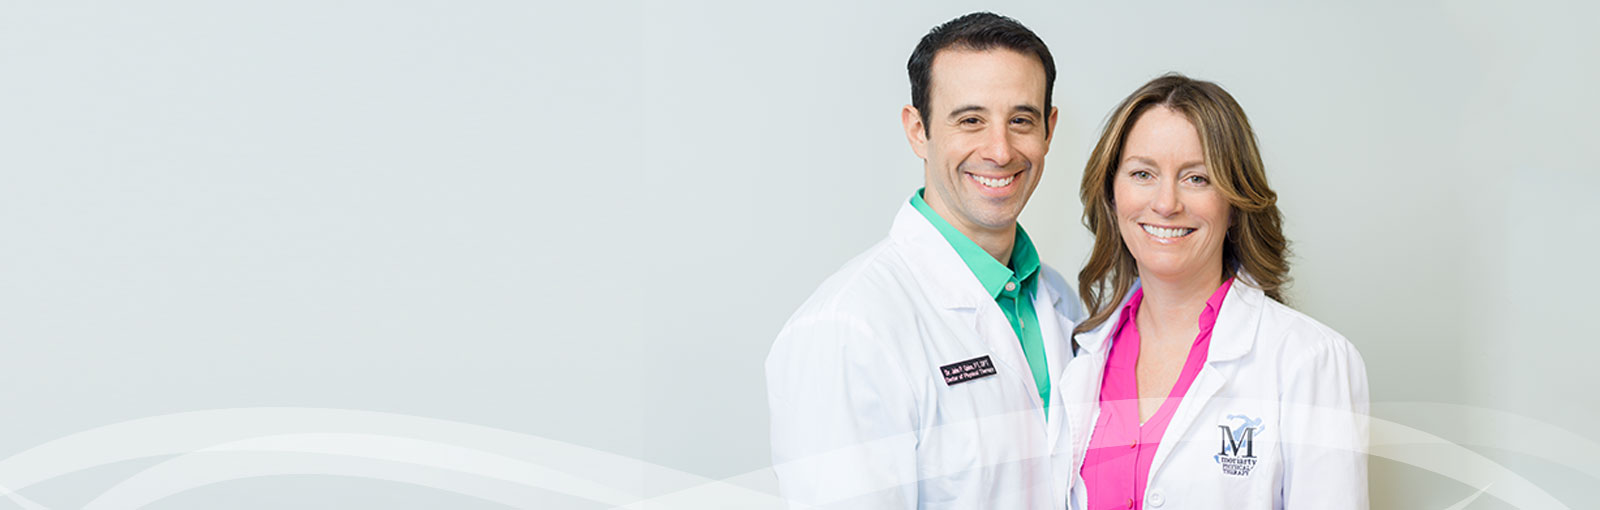 About physical therapy - About Moriarty Physical Therapy